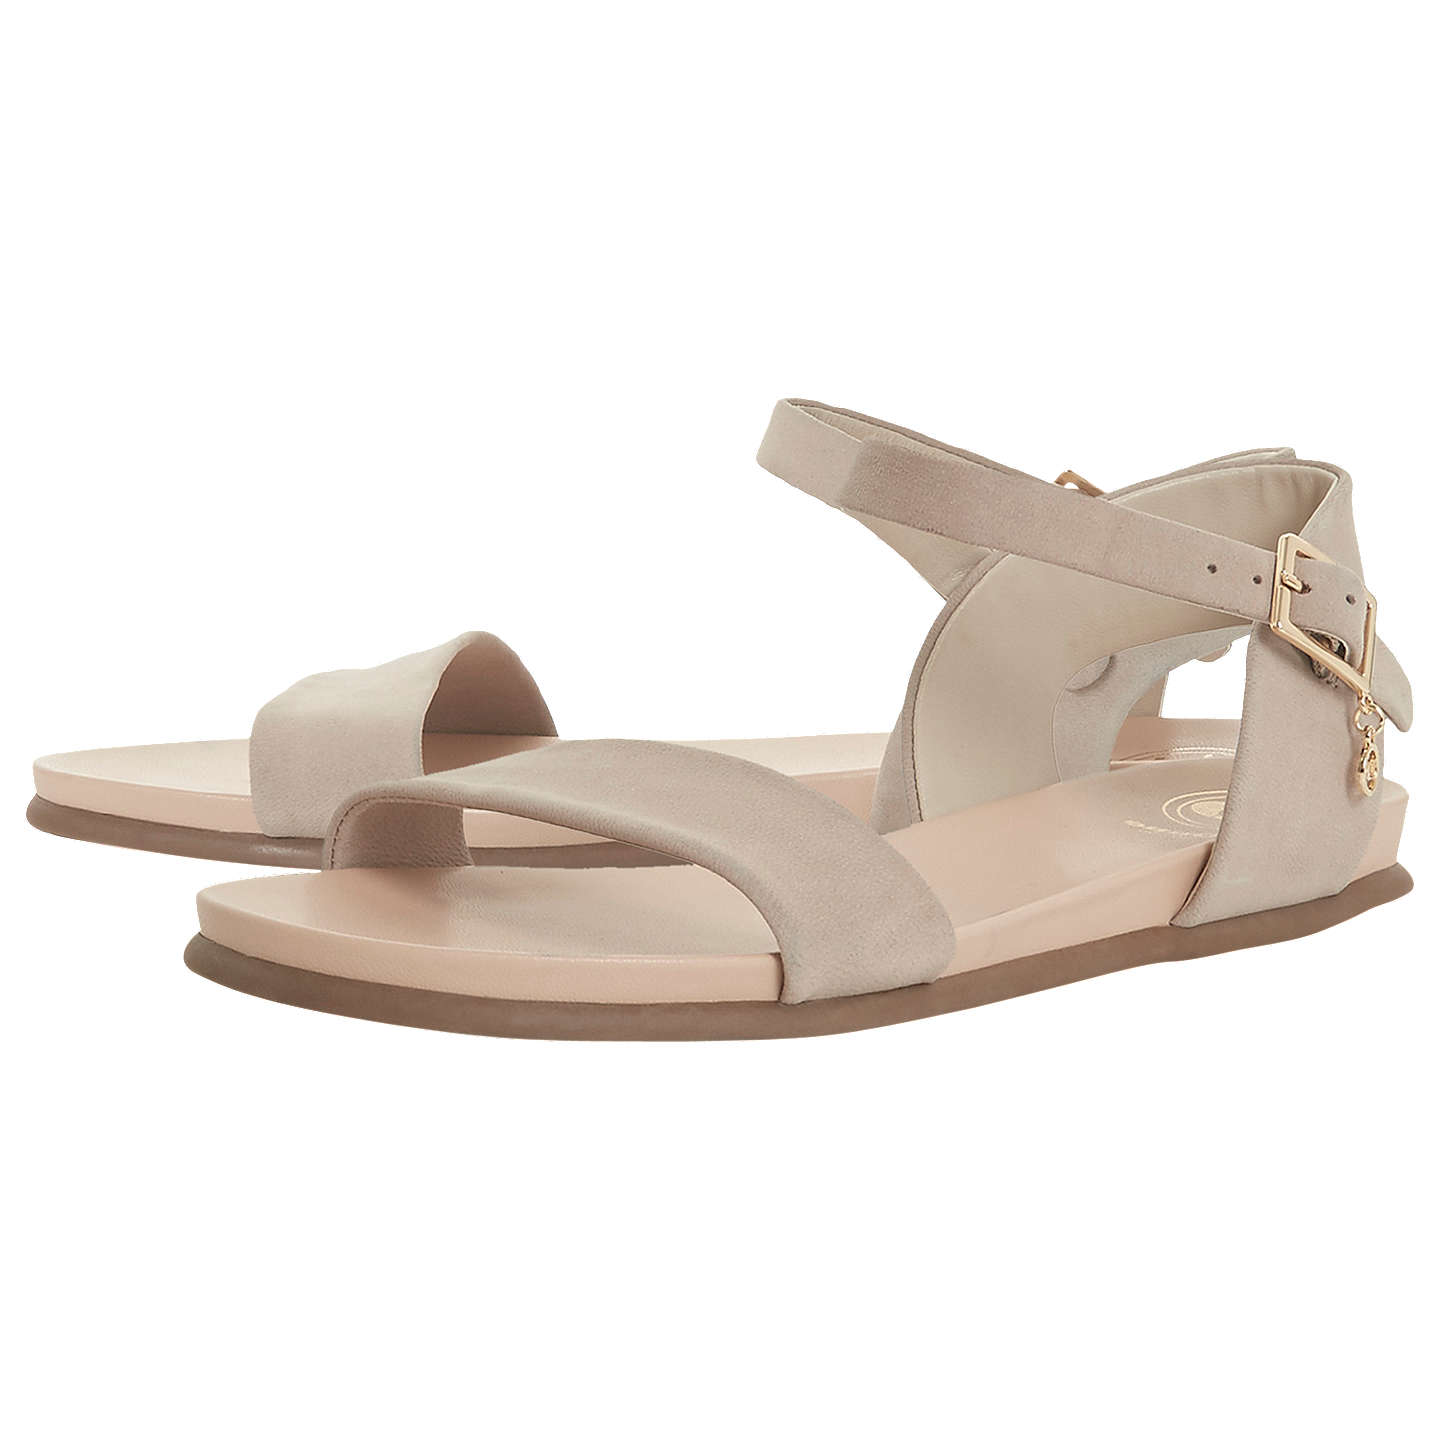 BuyDune Londoner Softee Flat Sandals, Taupe, 3 Online at johnlewis.com